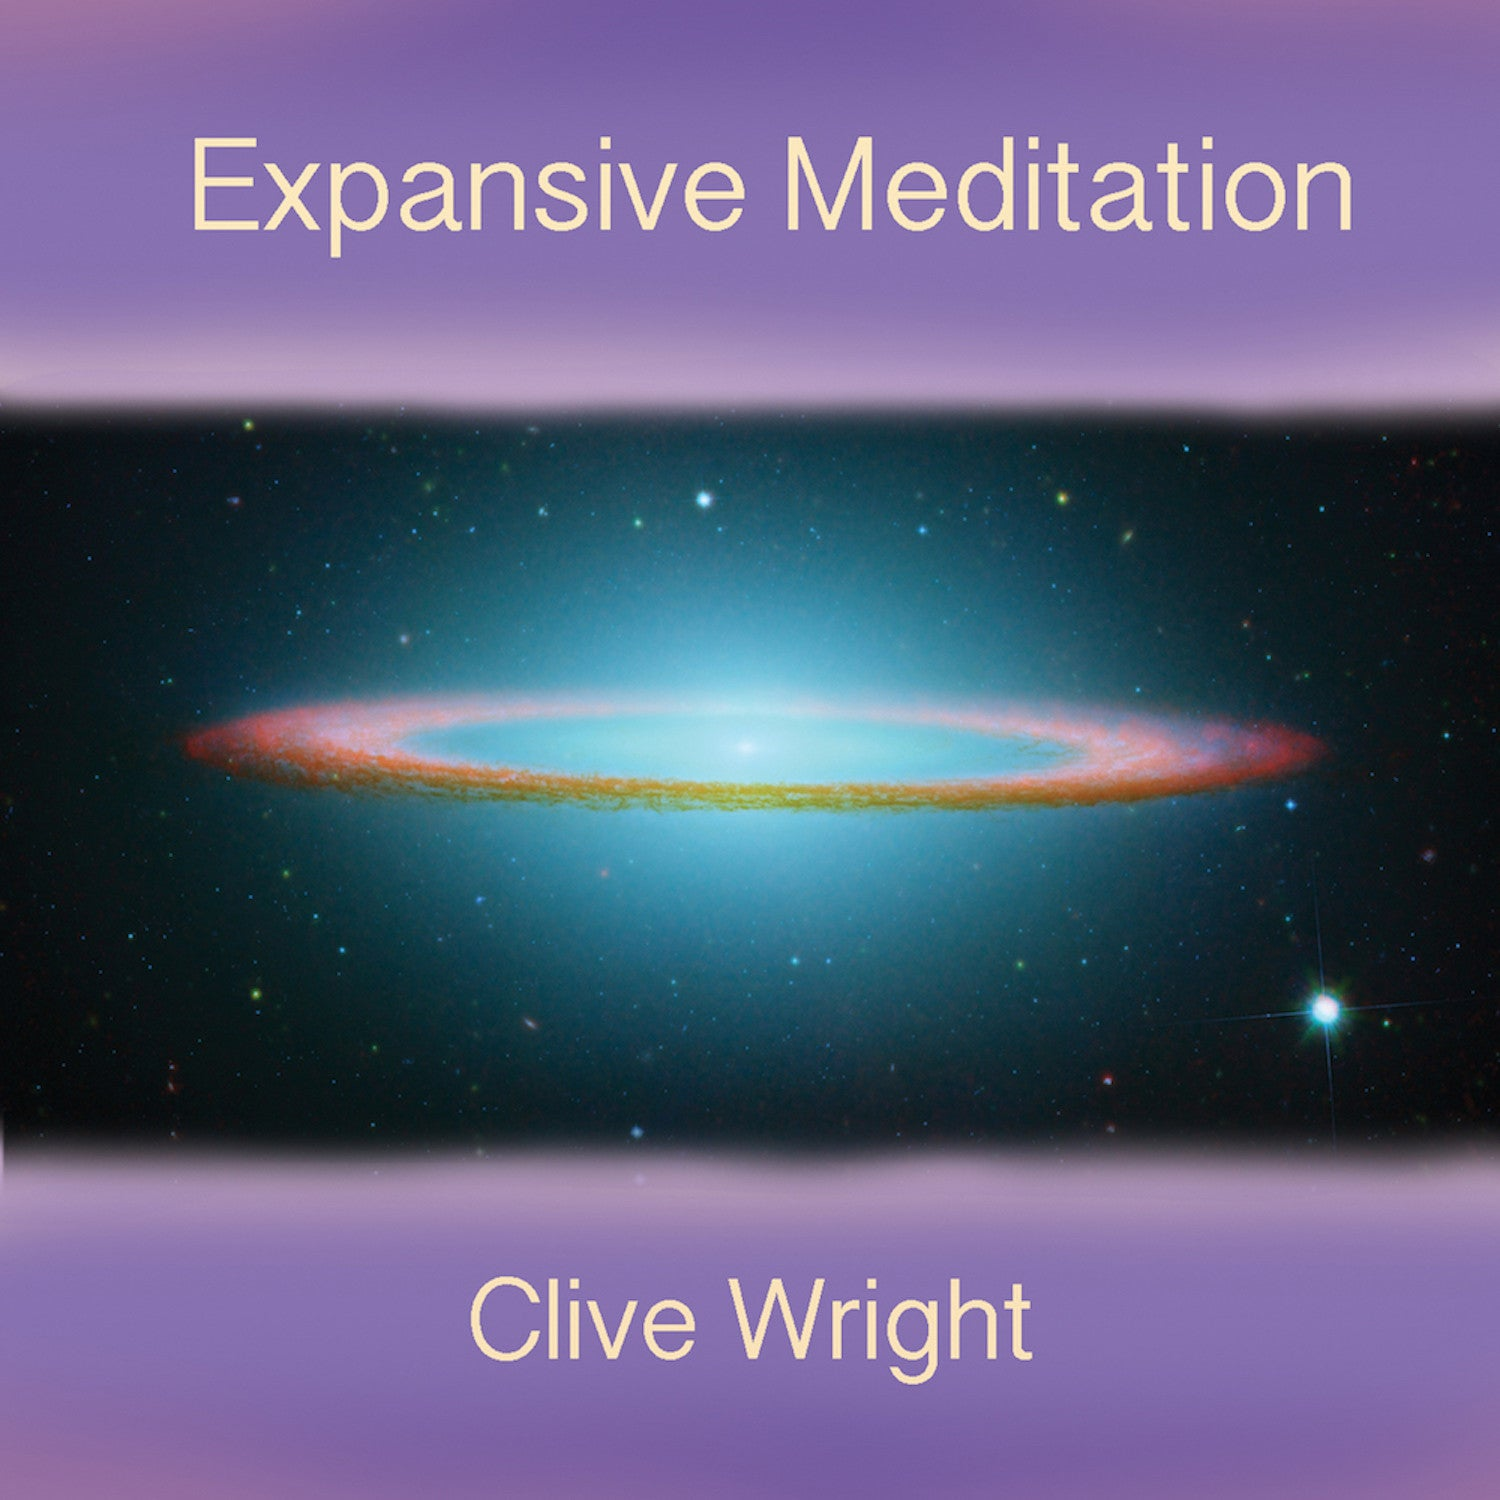 Clive Wright - Expansive Meditation